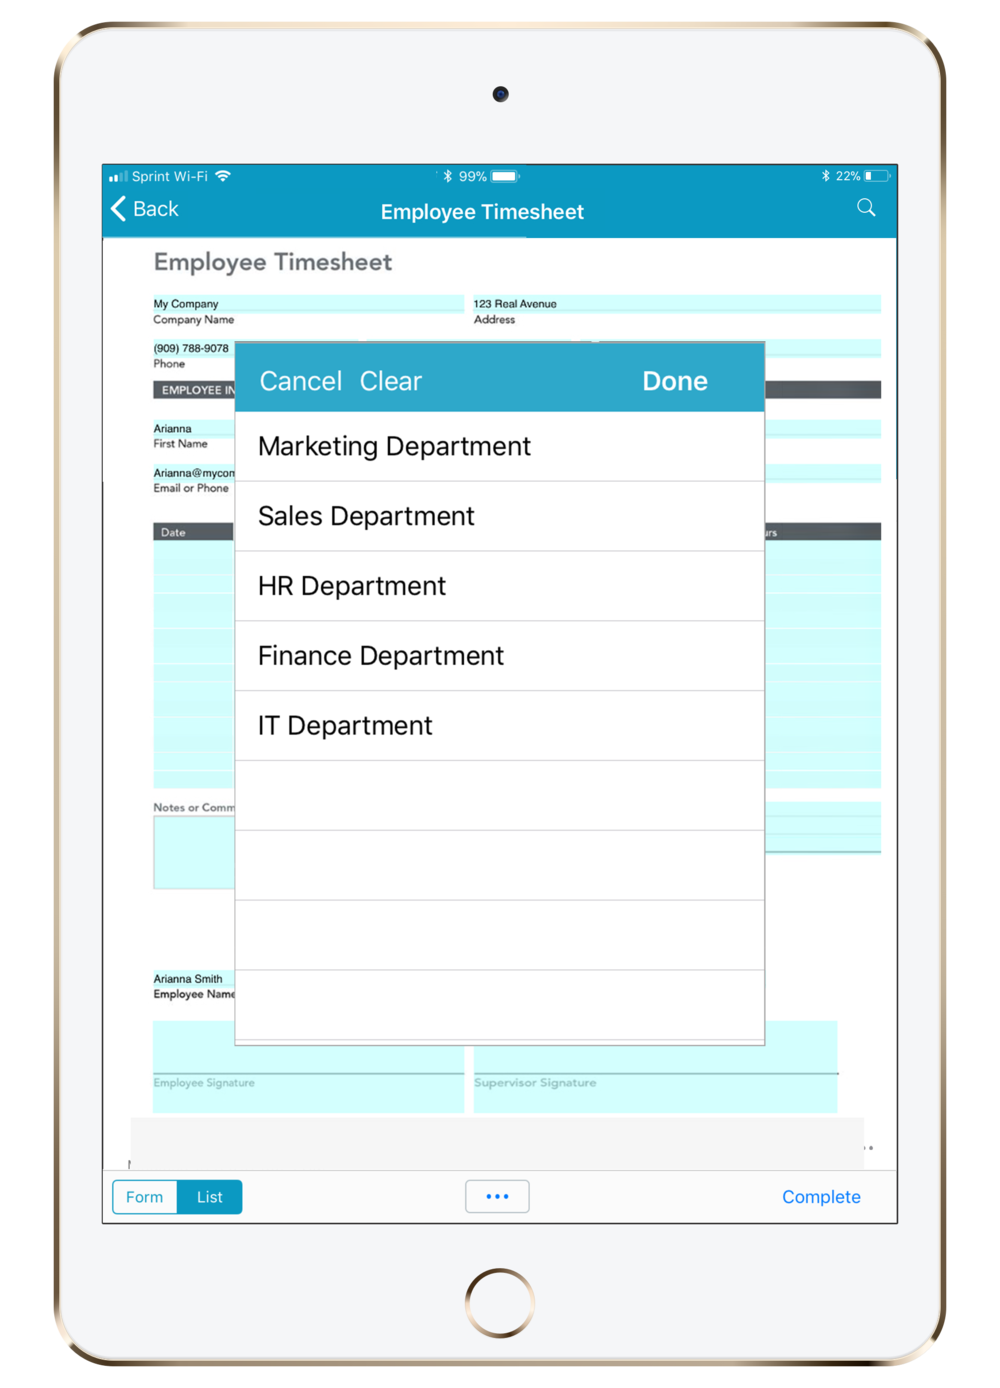 Employee Timesheet on iPad